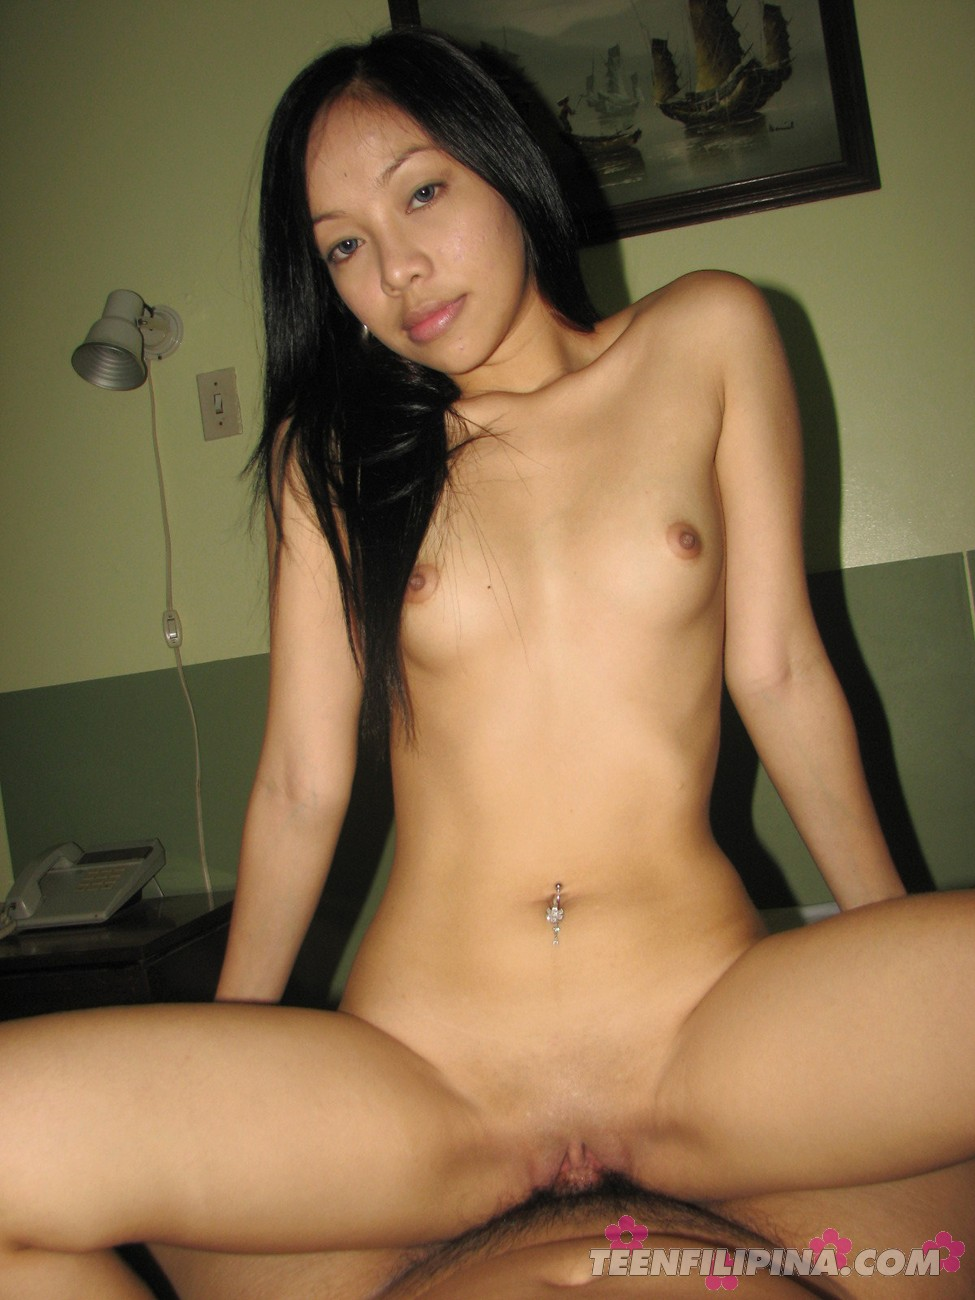 Filipina Teen Porn Sites